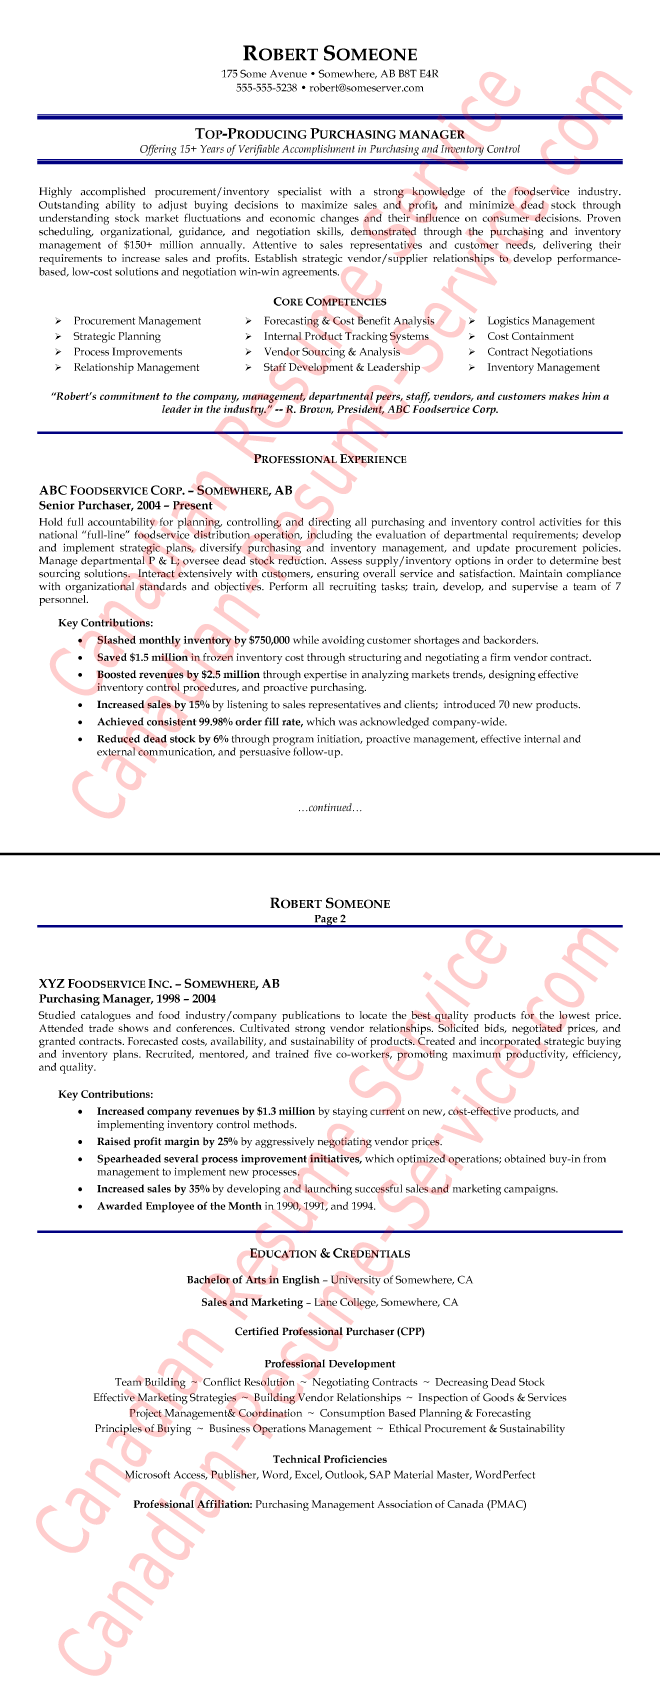 example of a purchasing manager resume